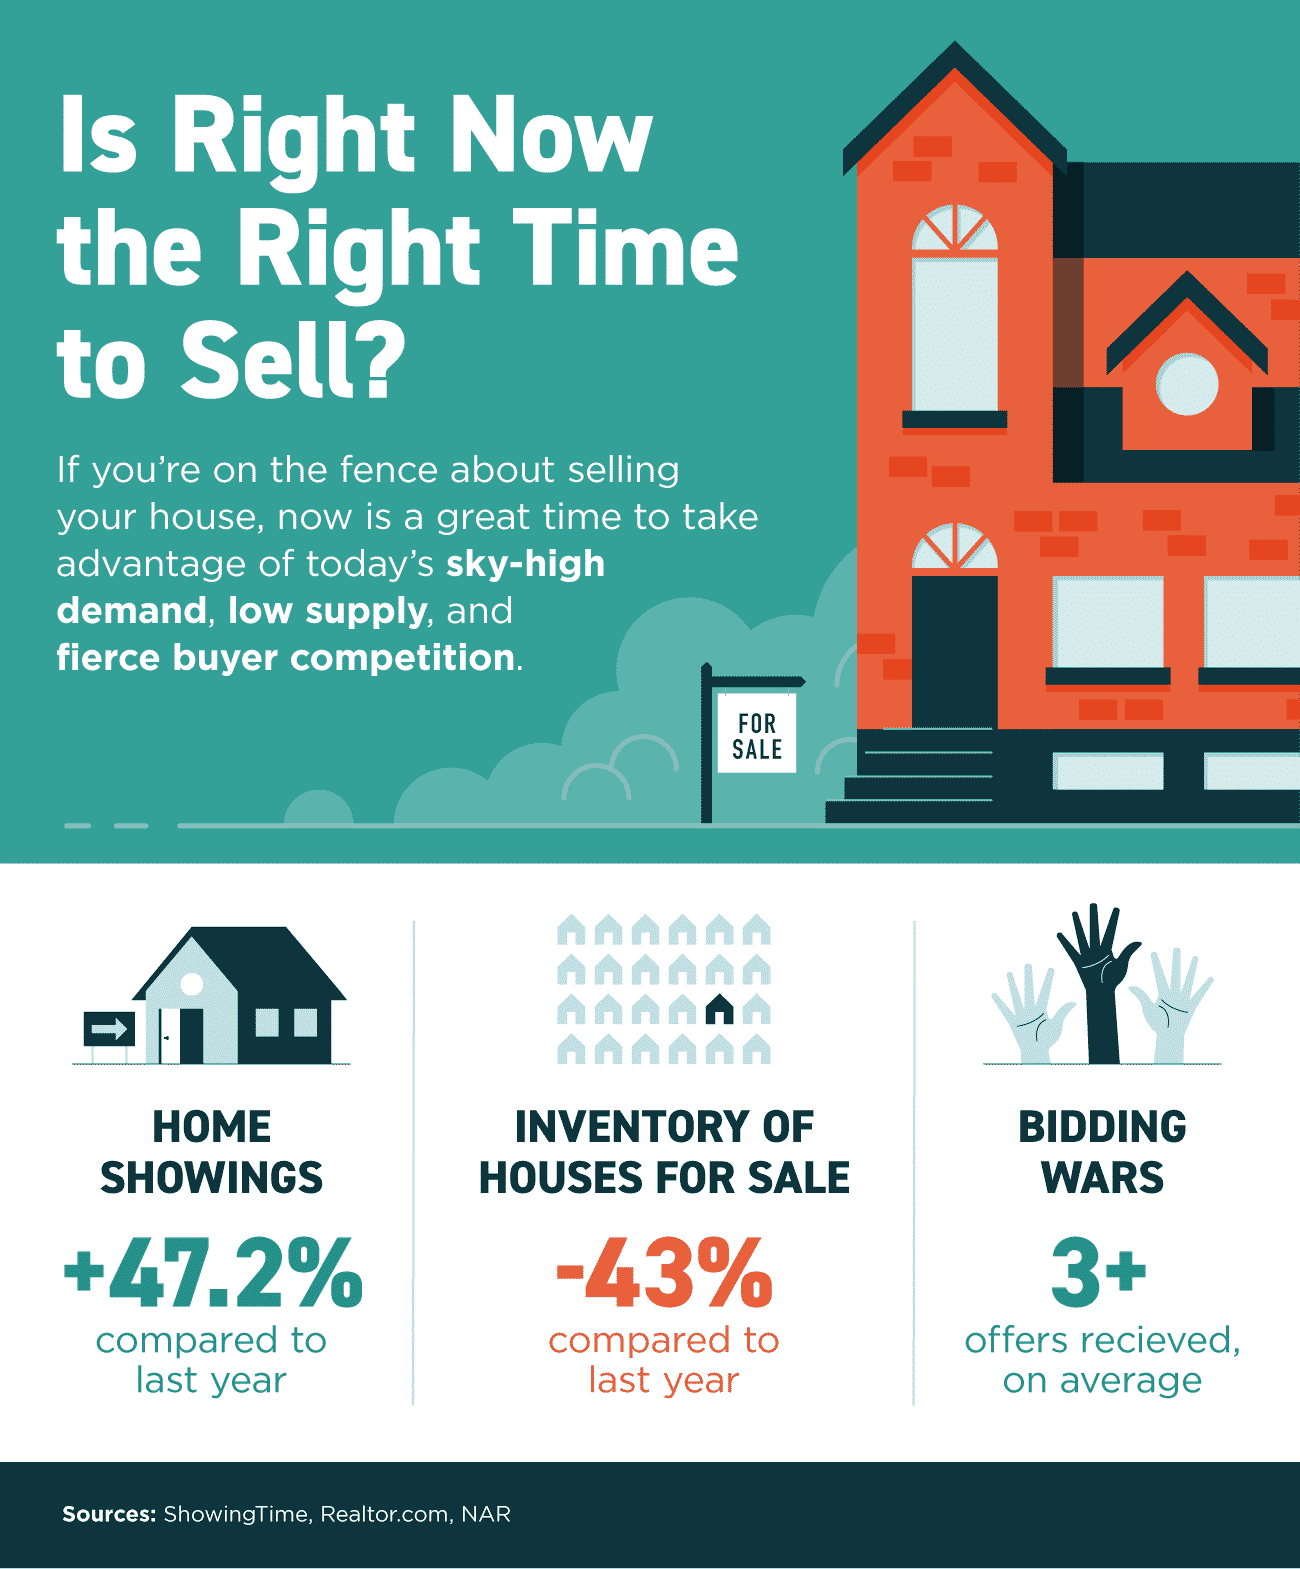 Is Now a Great Time to Sell? [INFOGRAPHIC]